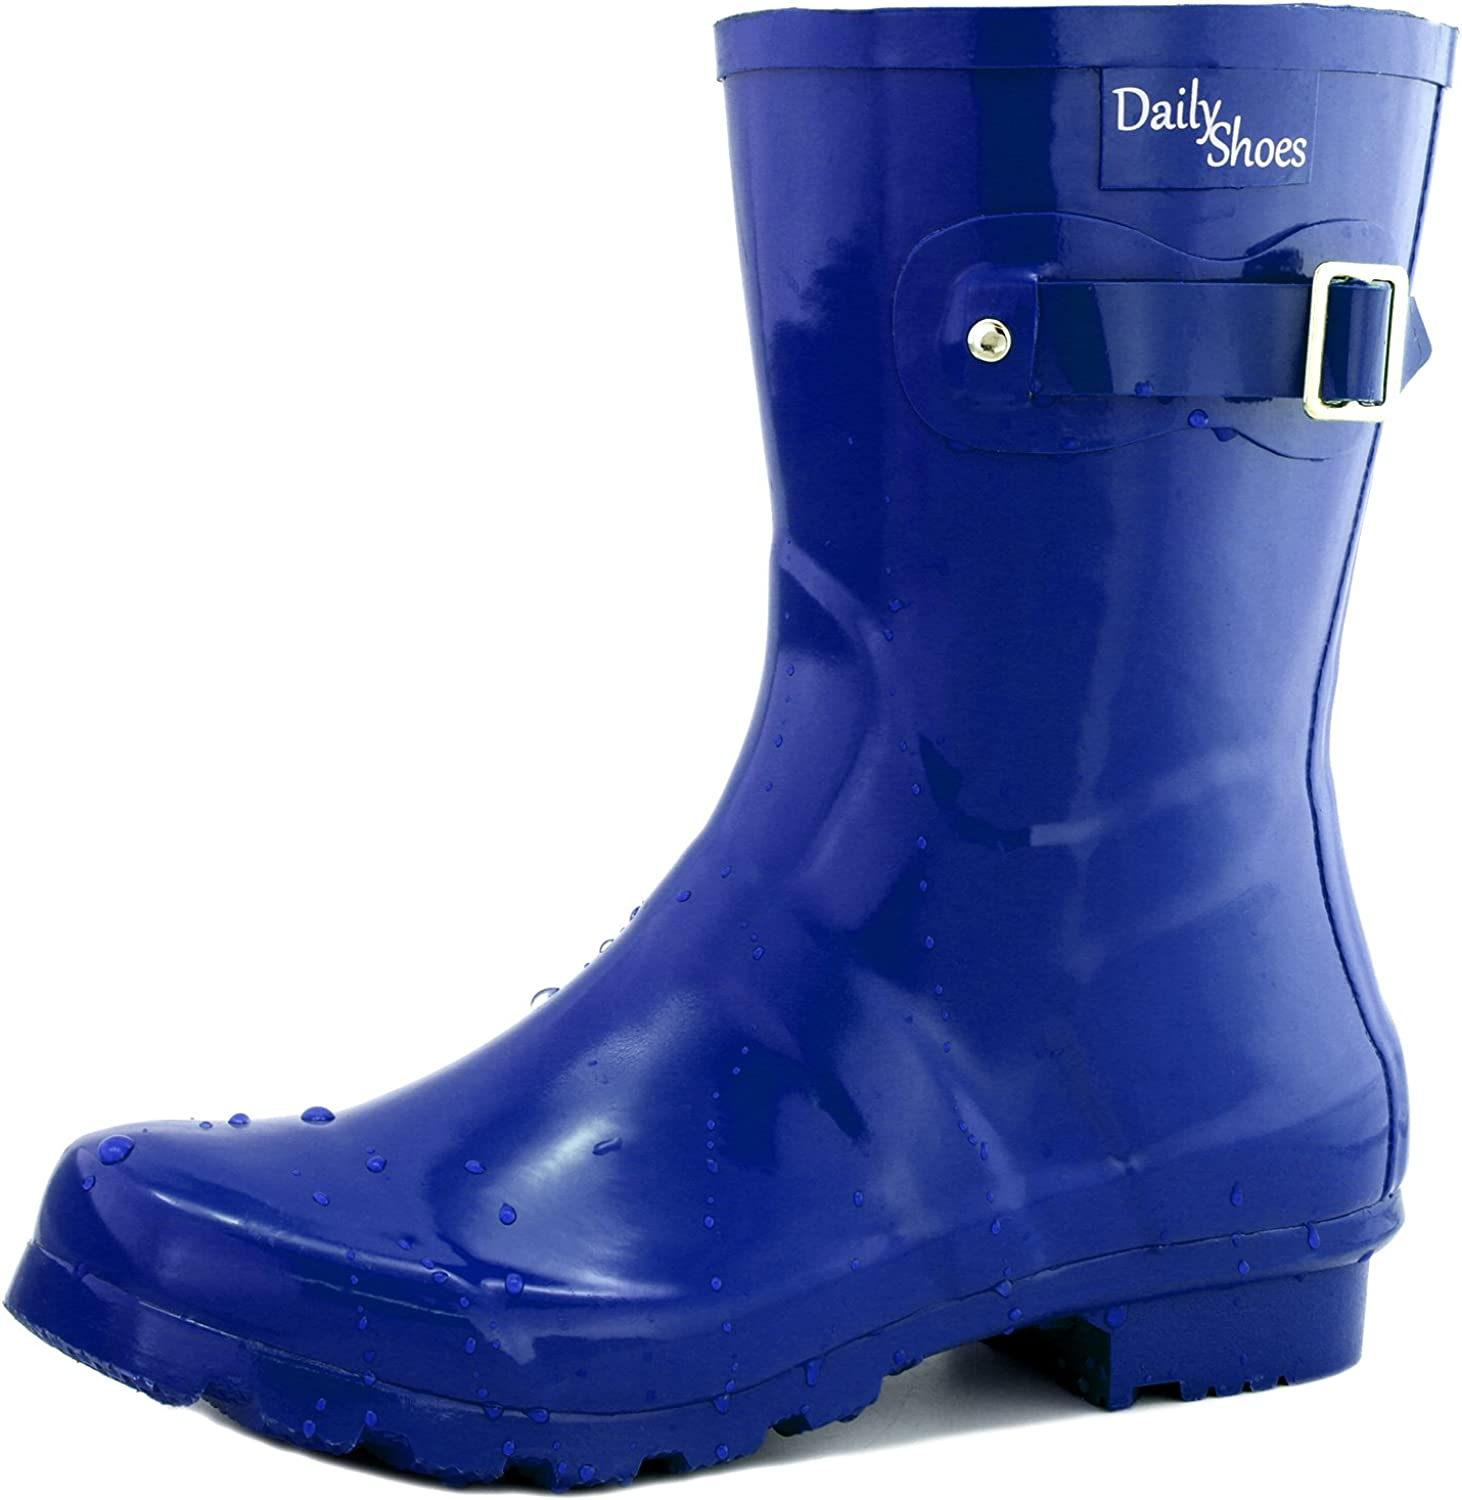 Dailyshoes Women's Mid Calf Buckle Ankle High Hunter Rain Round Toe Rainboots